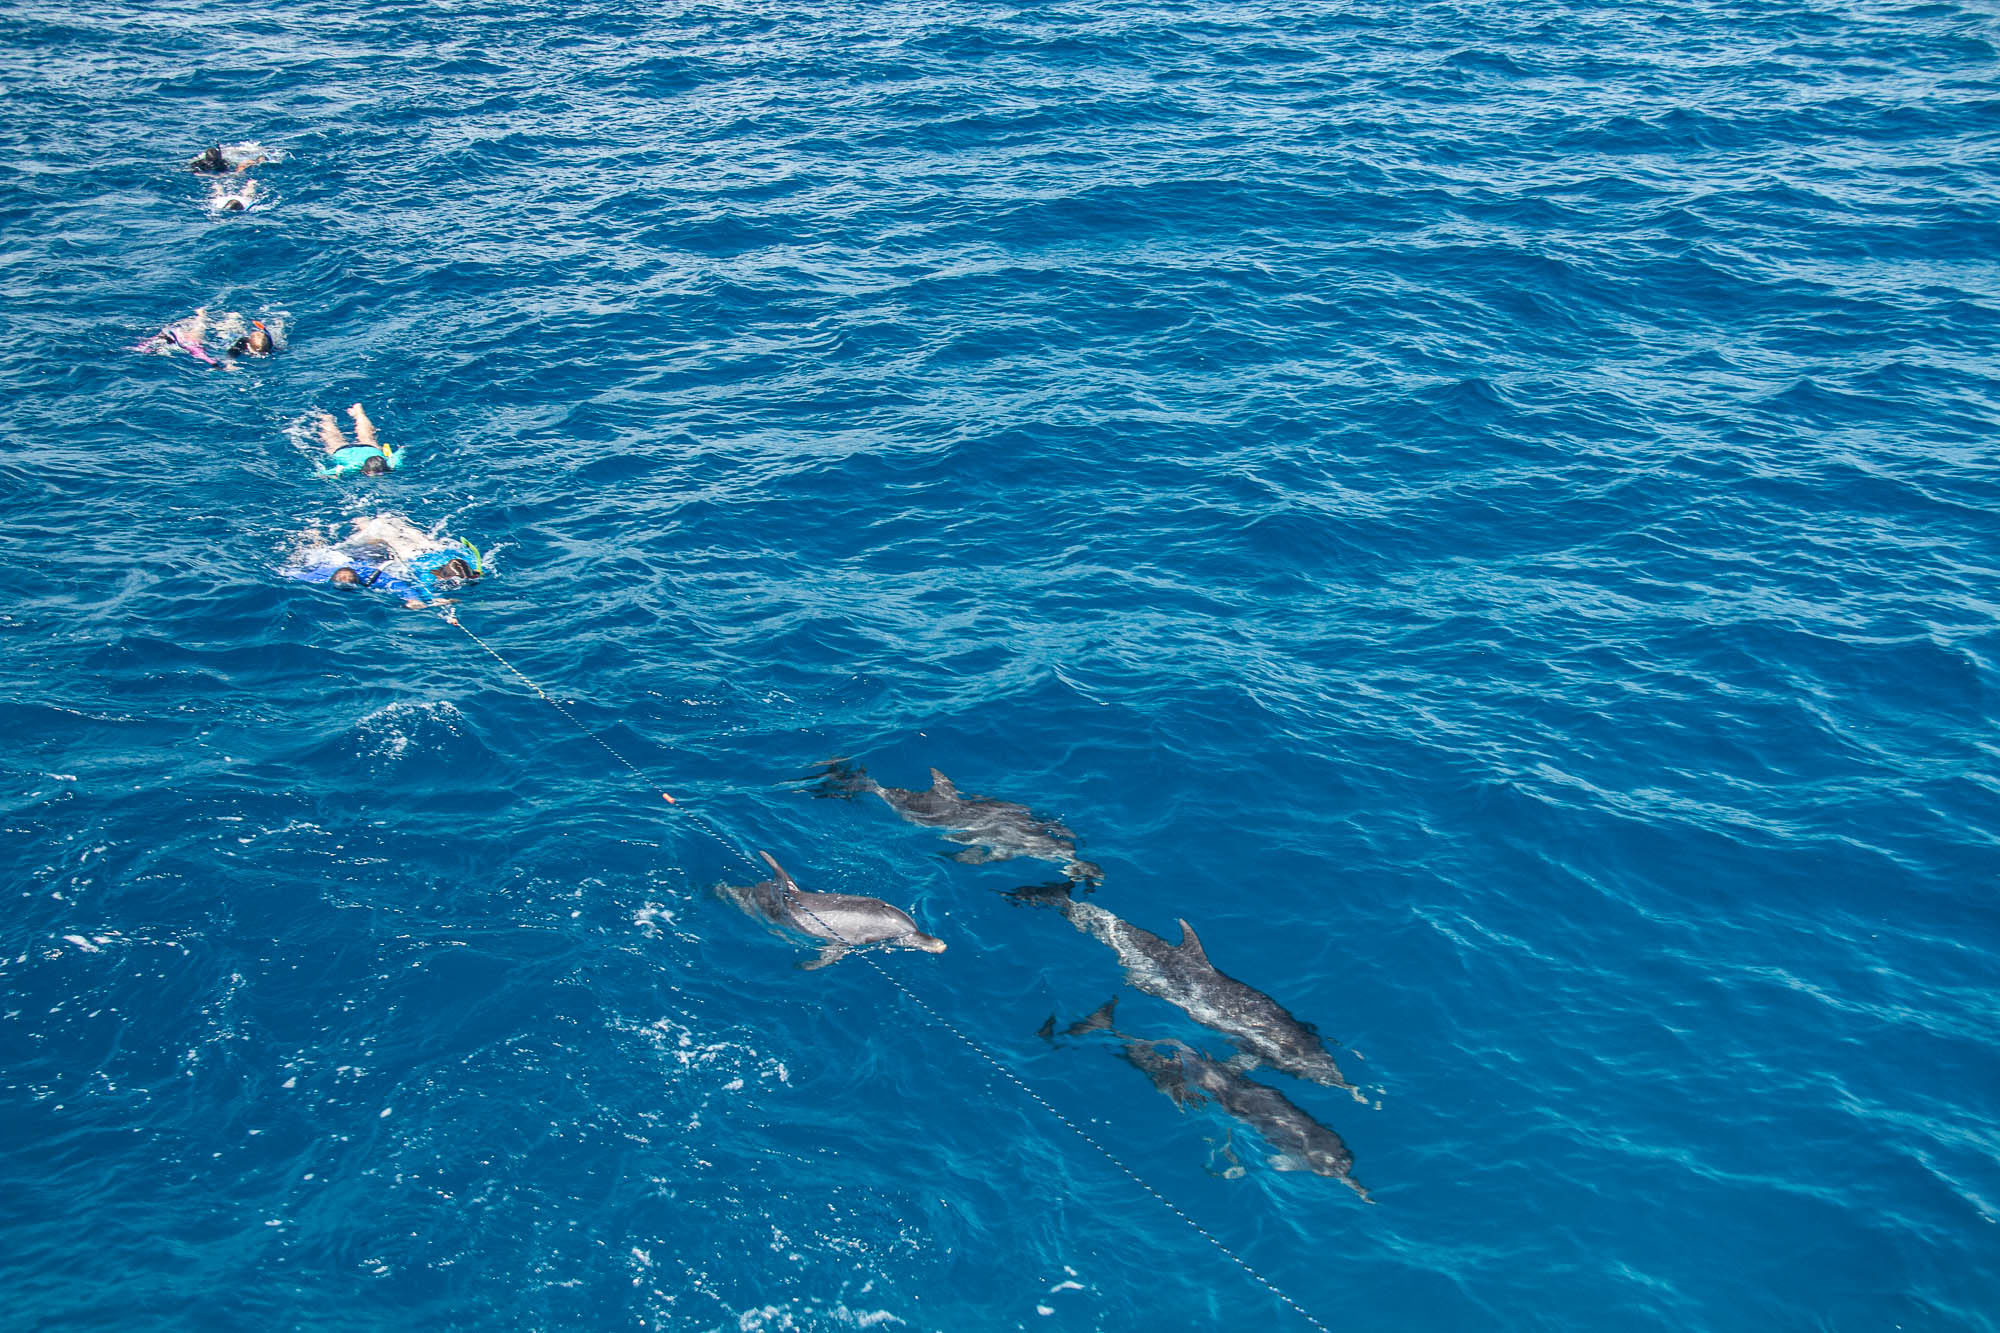 Being pulled on a rope from the boat to follow dolphins.